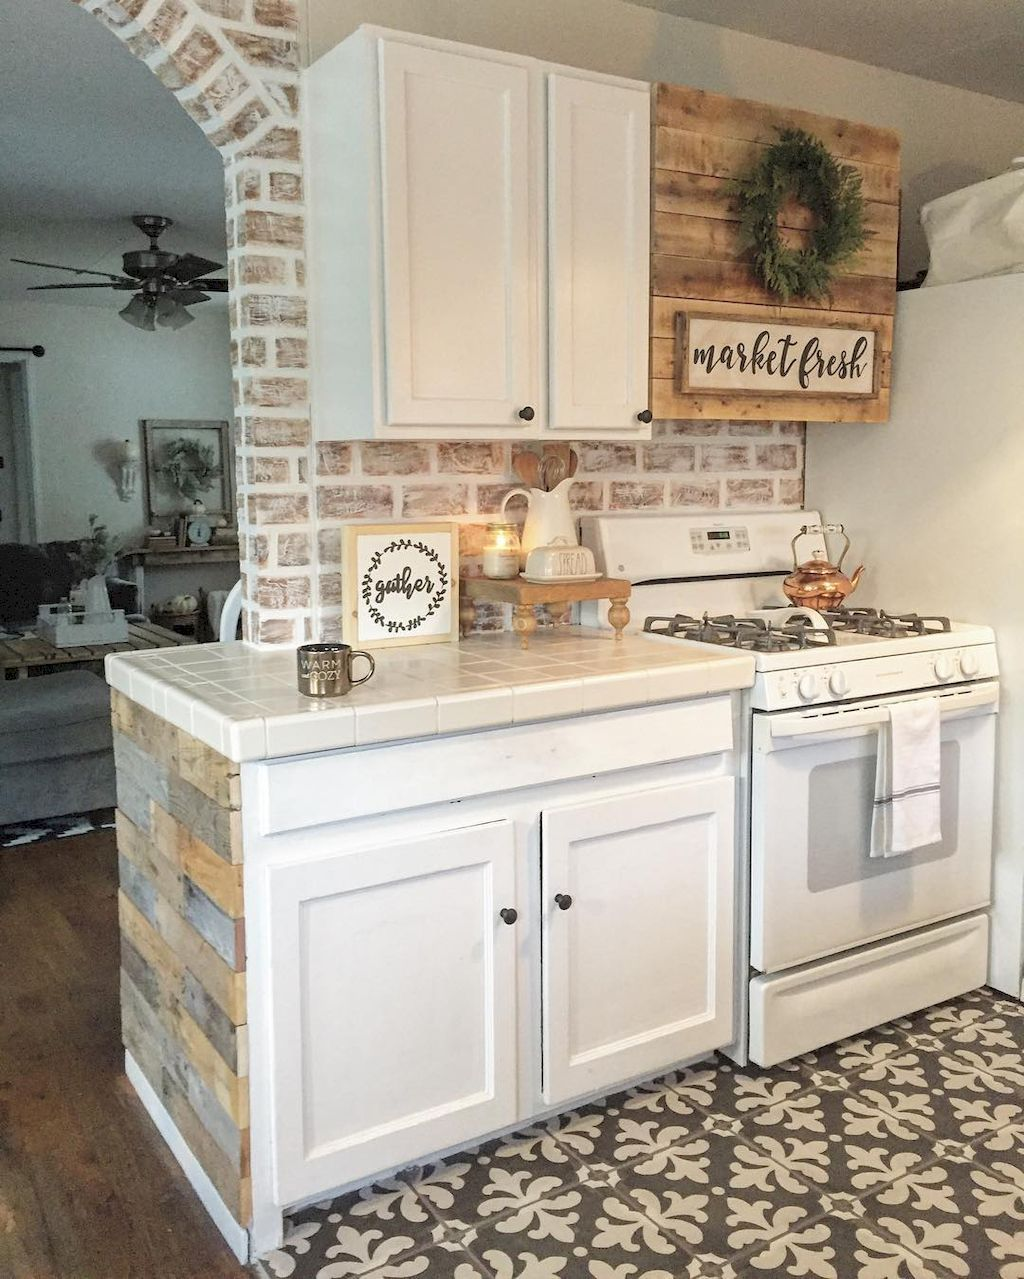 Farmhouse Kitchen Backsplash Ideas: 70 Tile Floor Farmhouse Kitchen Decor Ideas